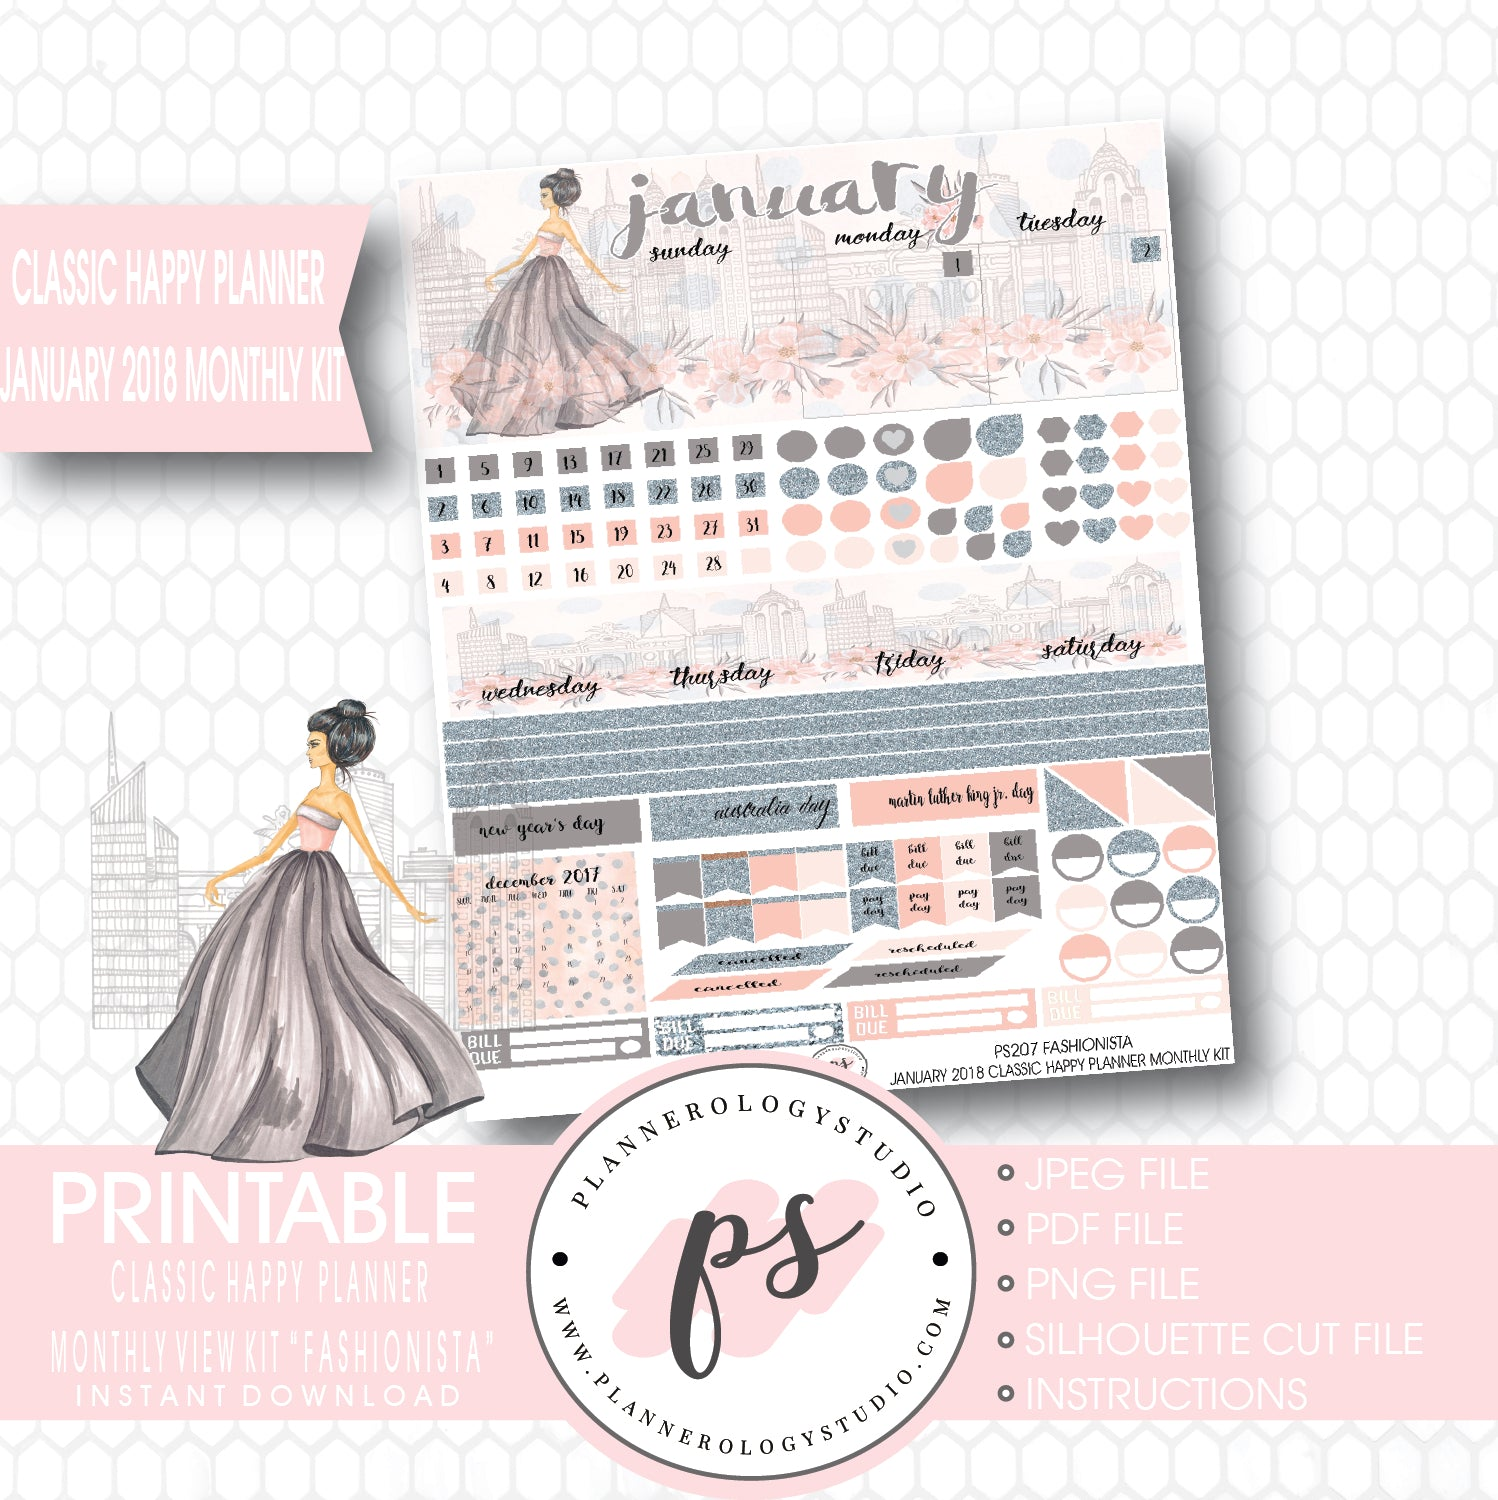 graphic relating to Happy Planner Free Printable Stickers titled Fashionista January 2018 Regular Look at Package Printable Planner